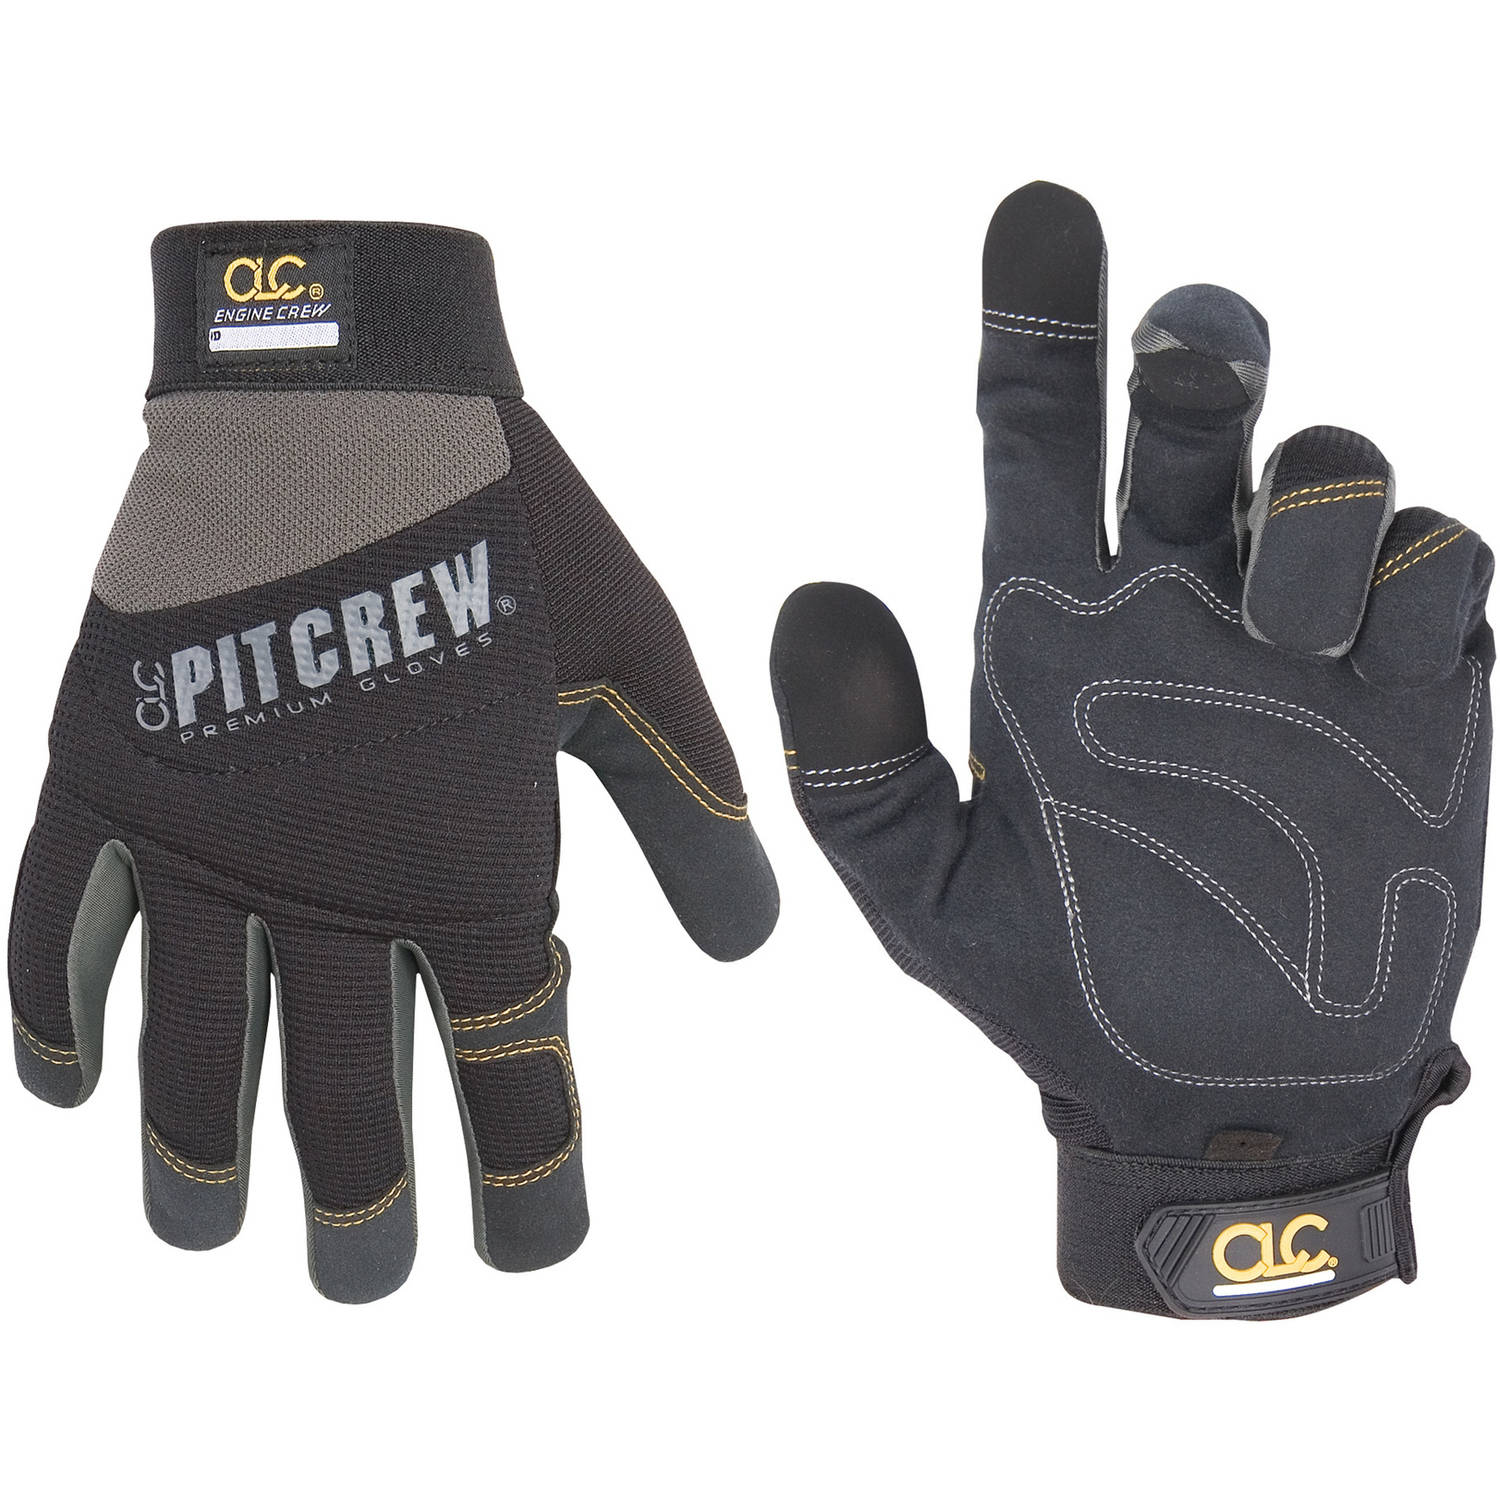 CLC Work Gear 205BL Large Black and Gray Engine Crew Mechanics Gloves by Custom Leathercraft